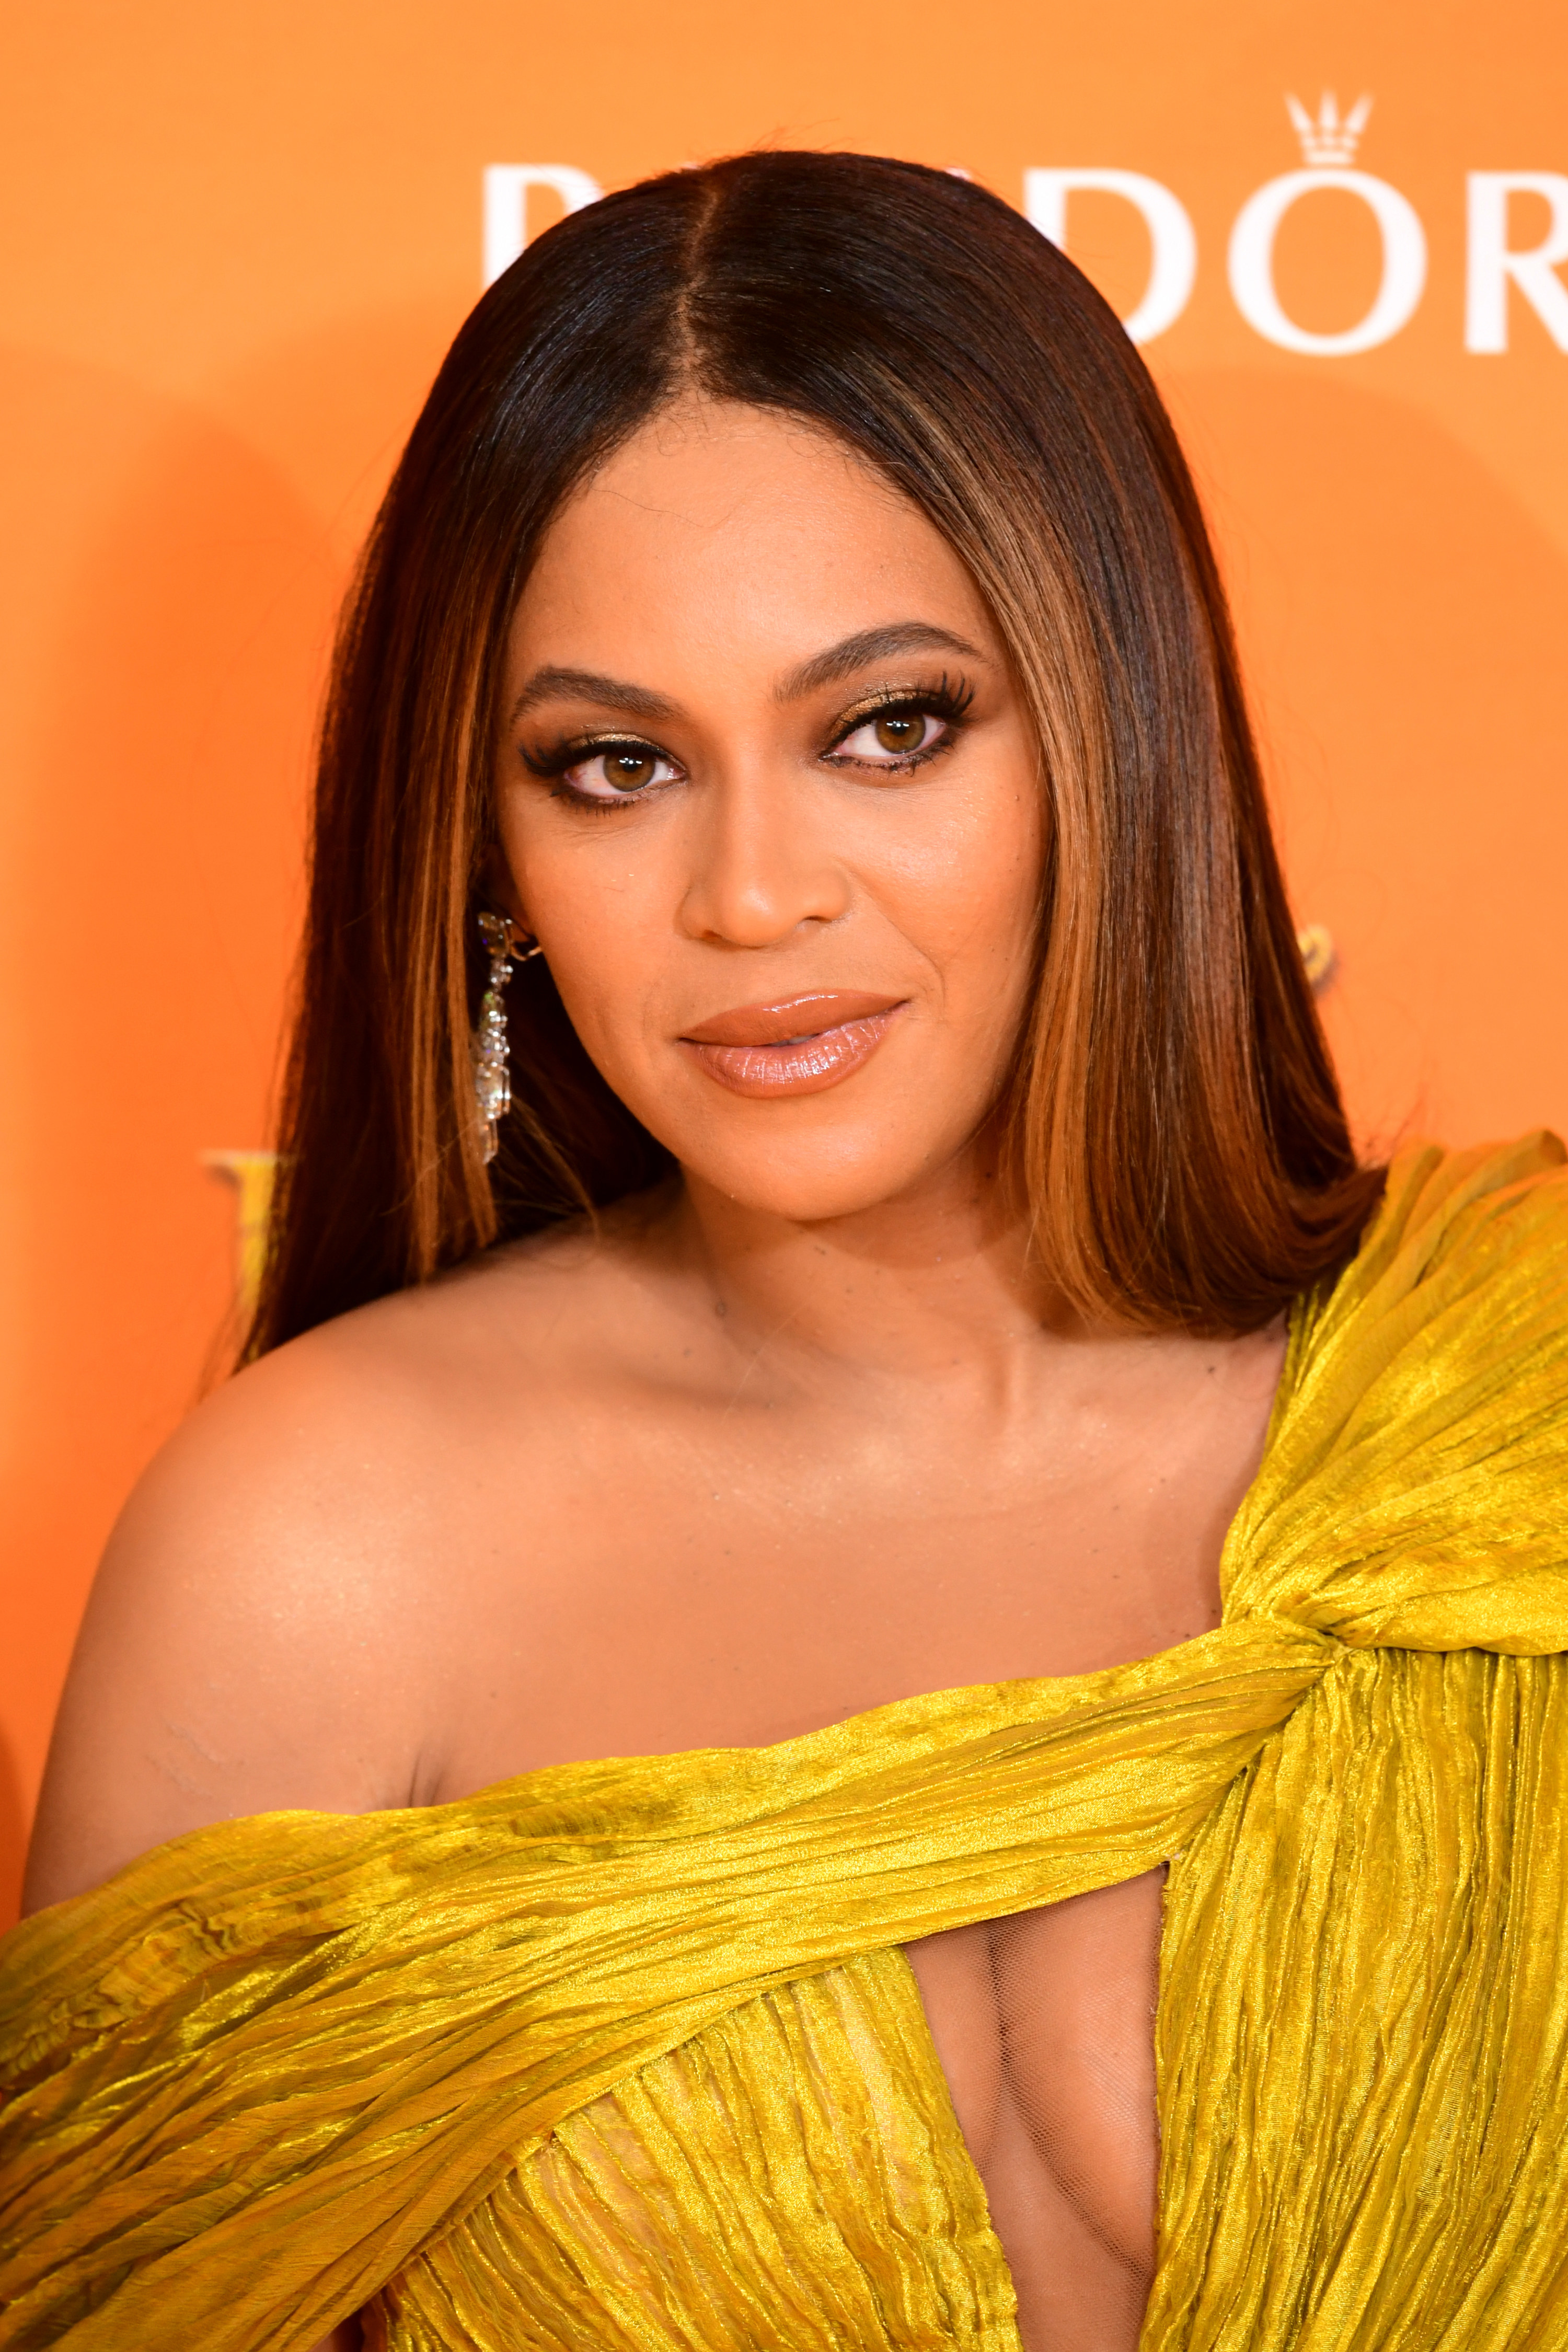 Beyoncé is photographed at the European premiere of Disney's The Lion King in 2019